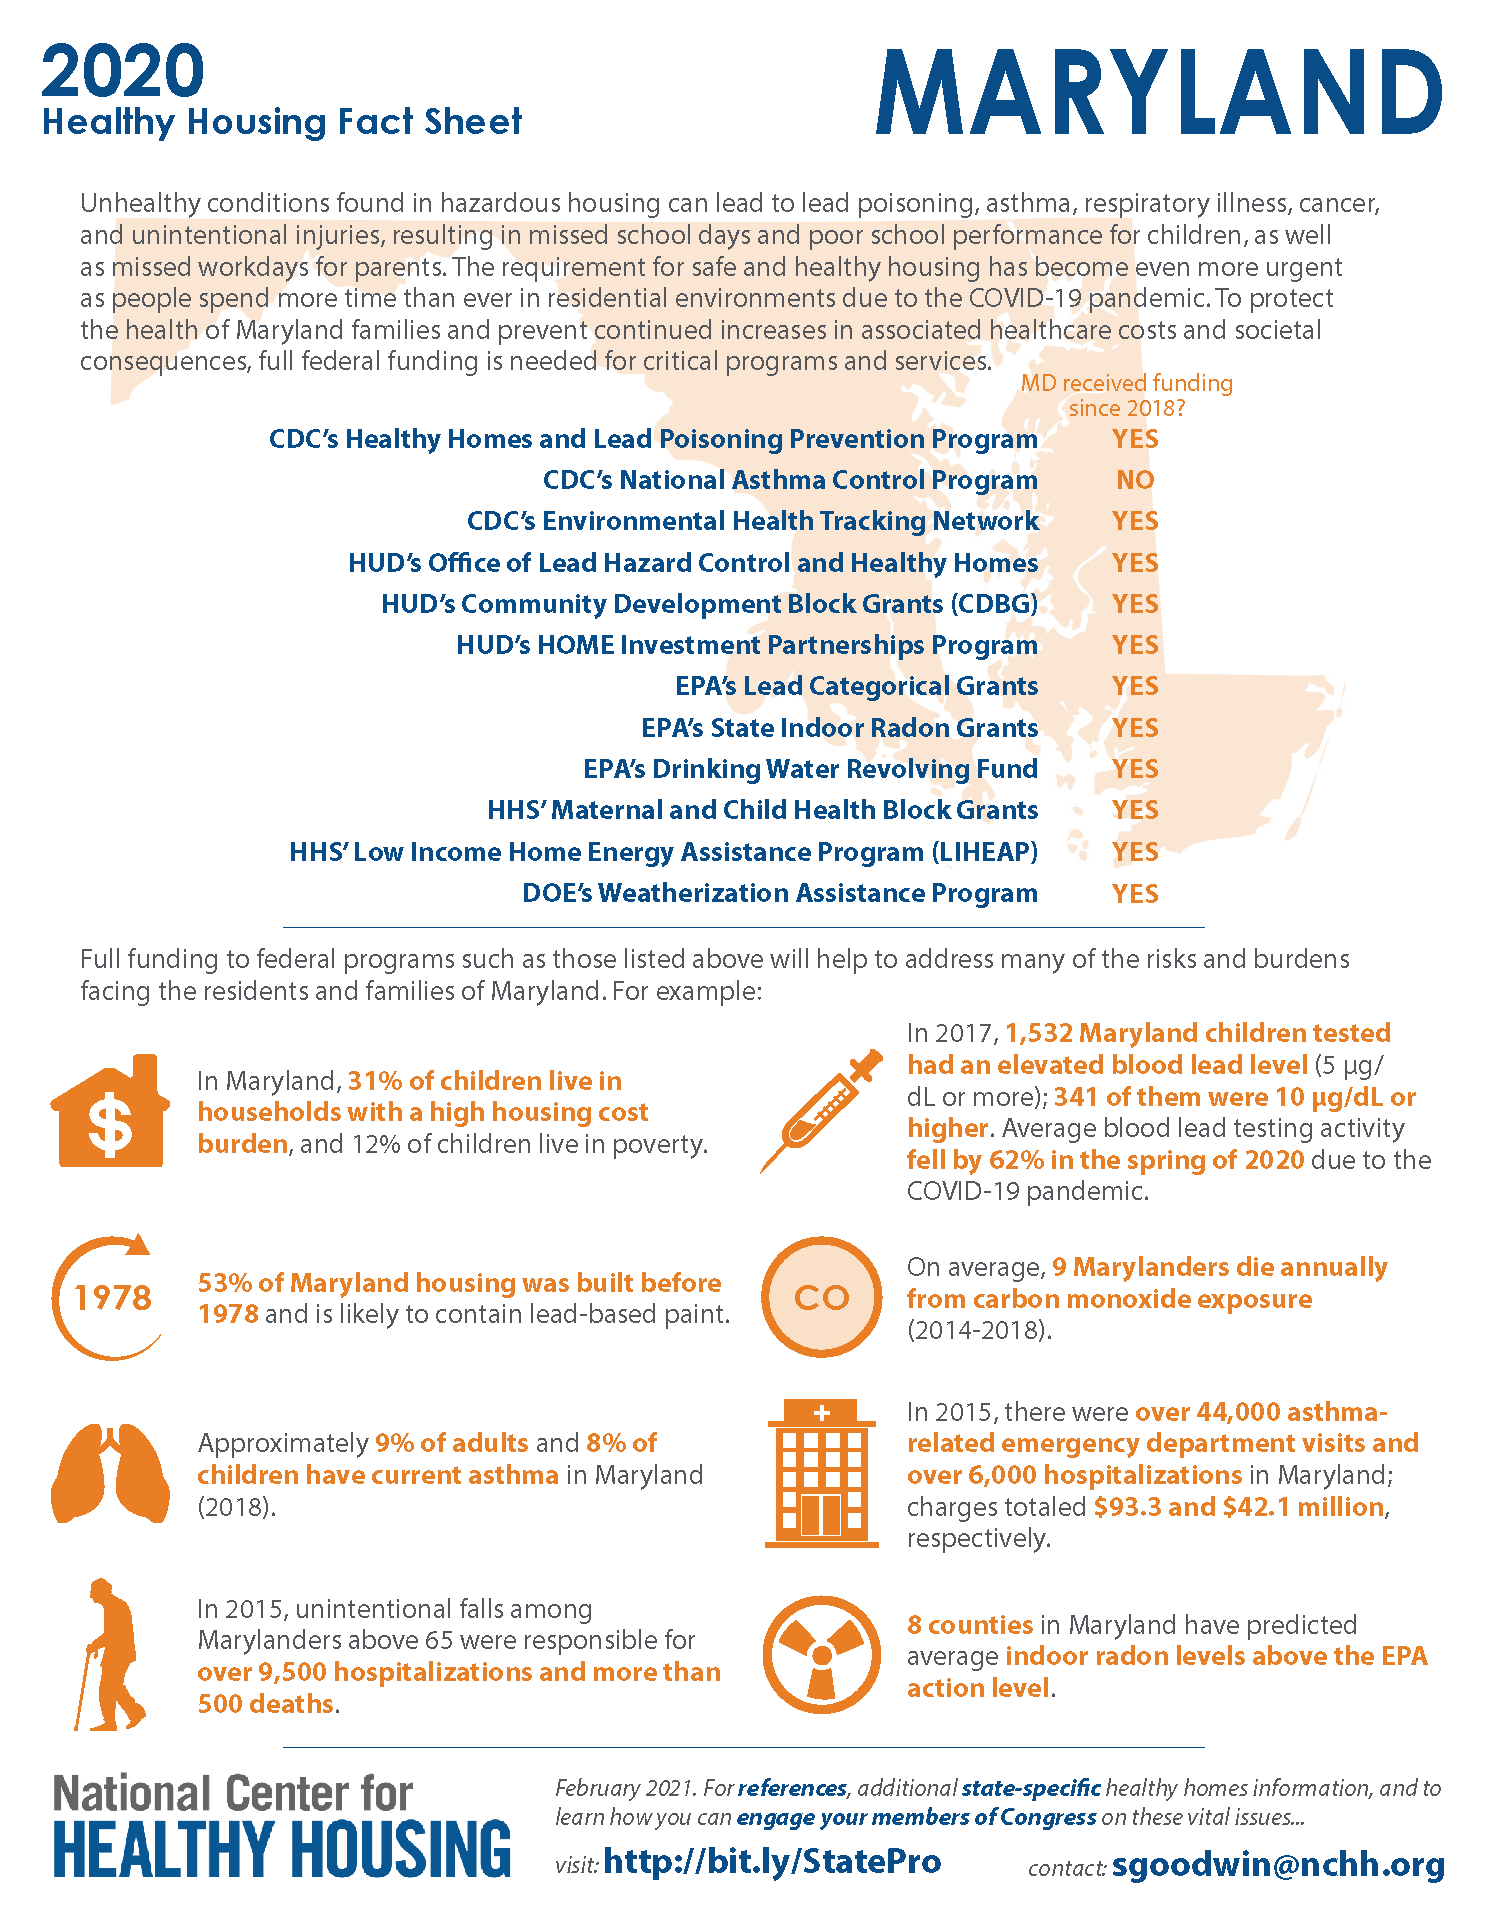 Healthy Housing Fact Sheet - Maryland 2020